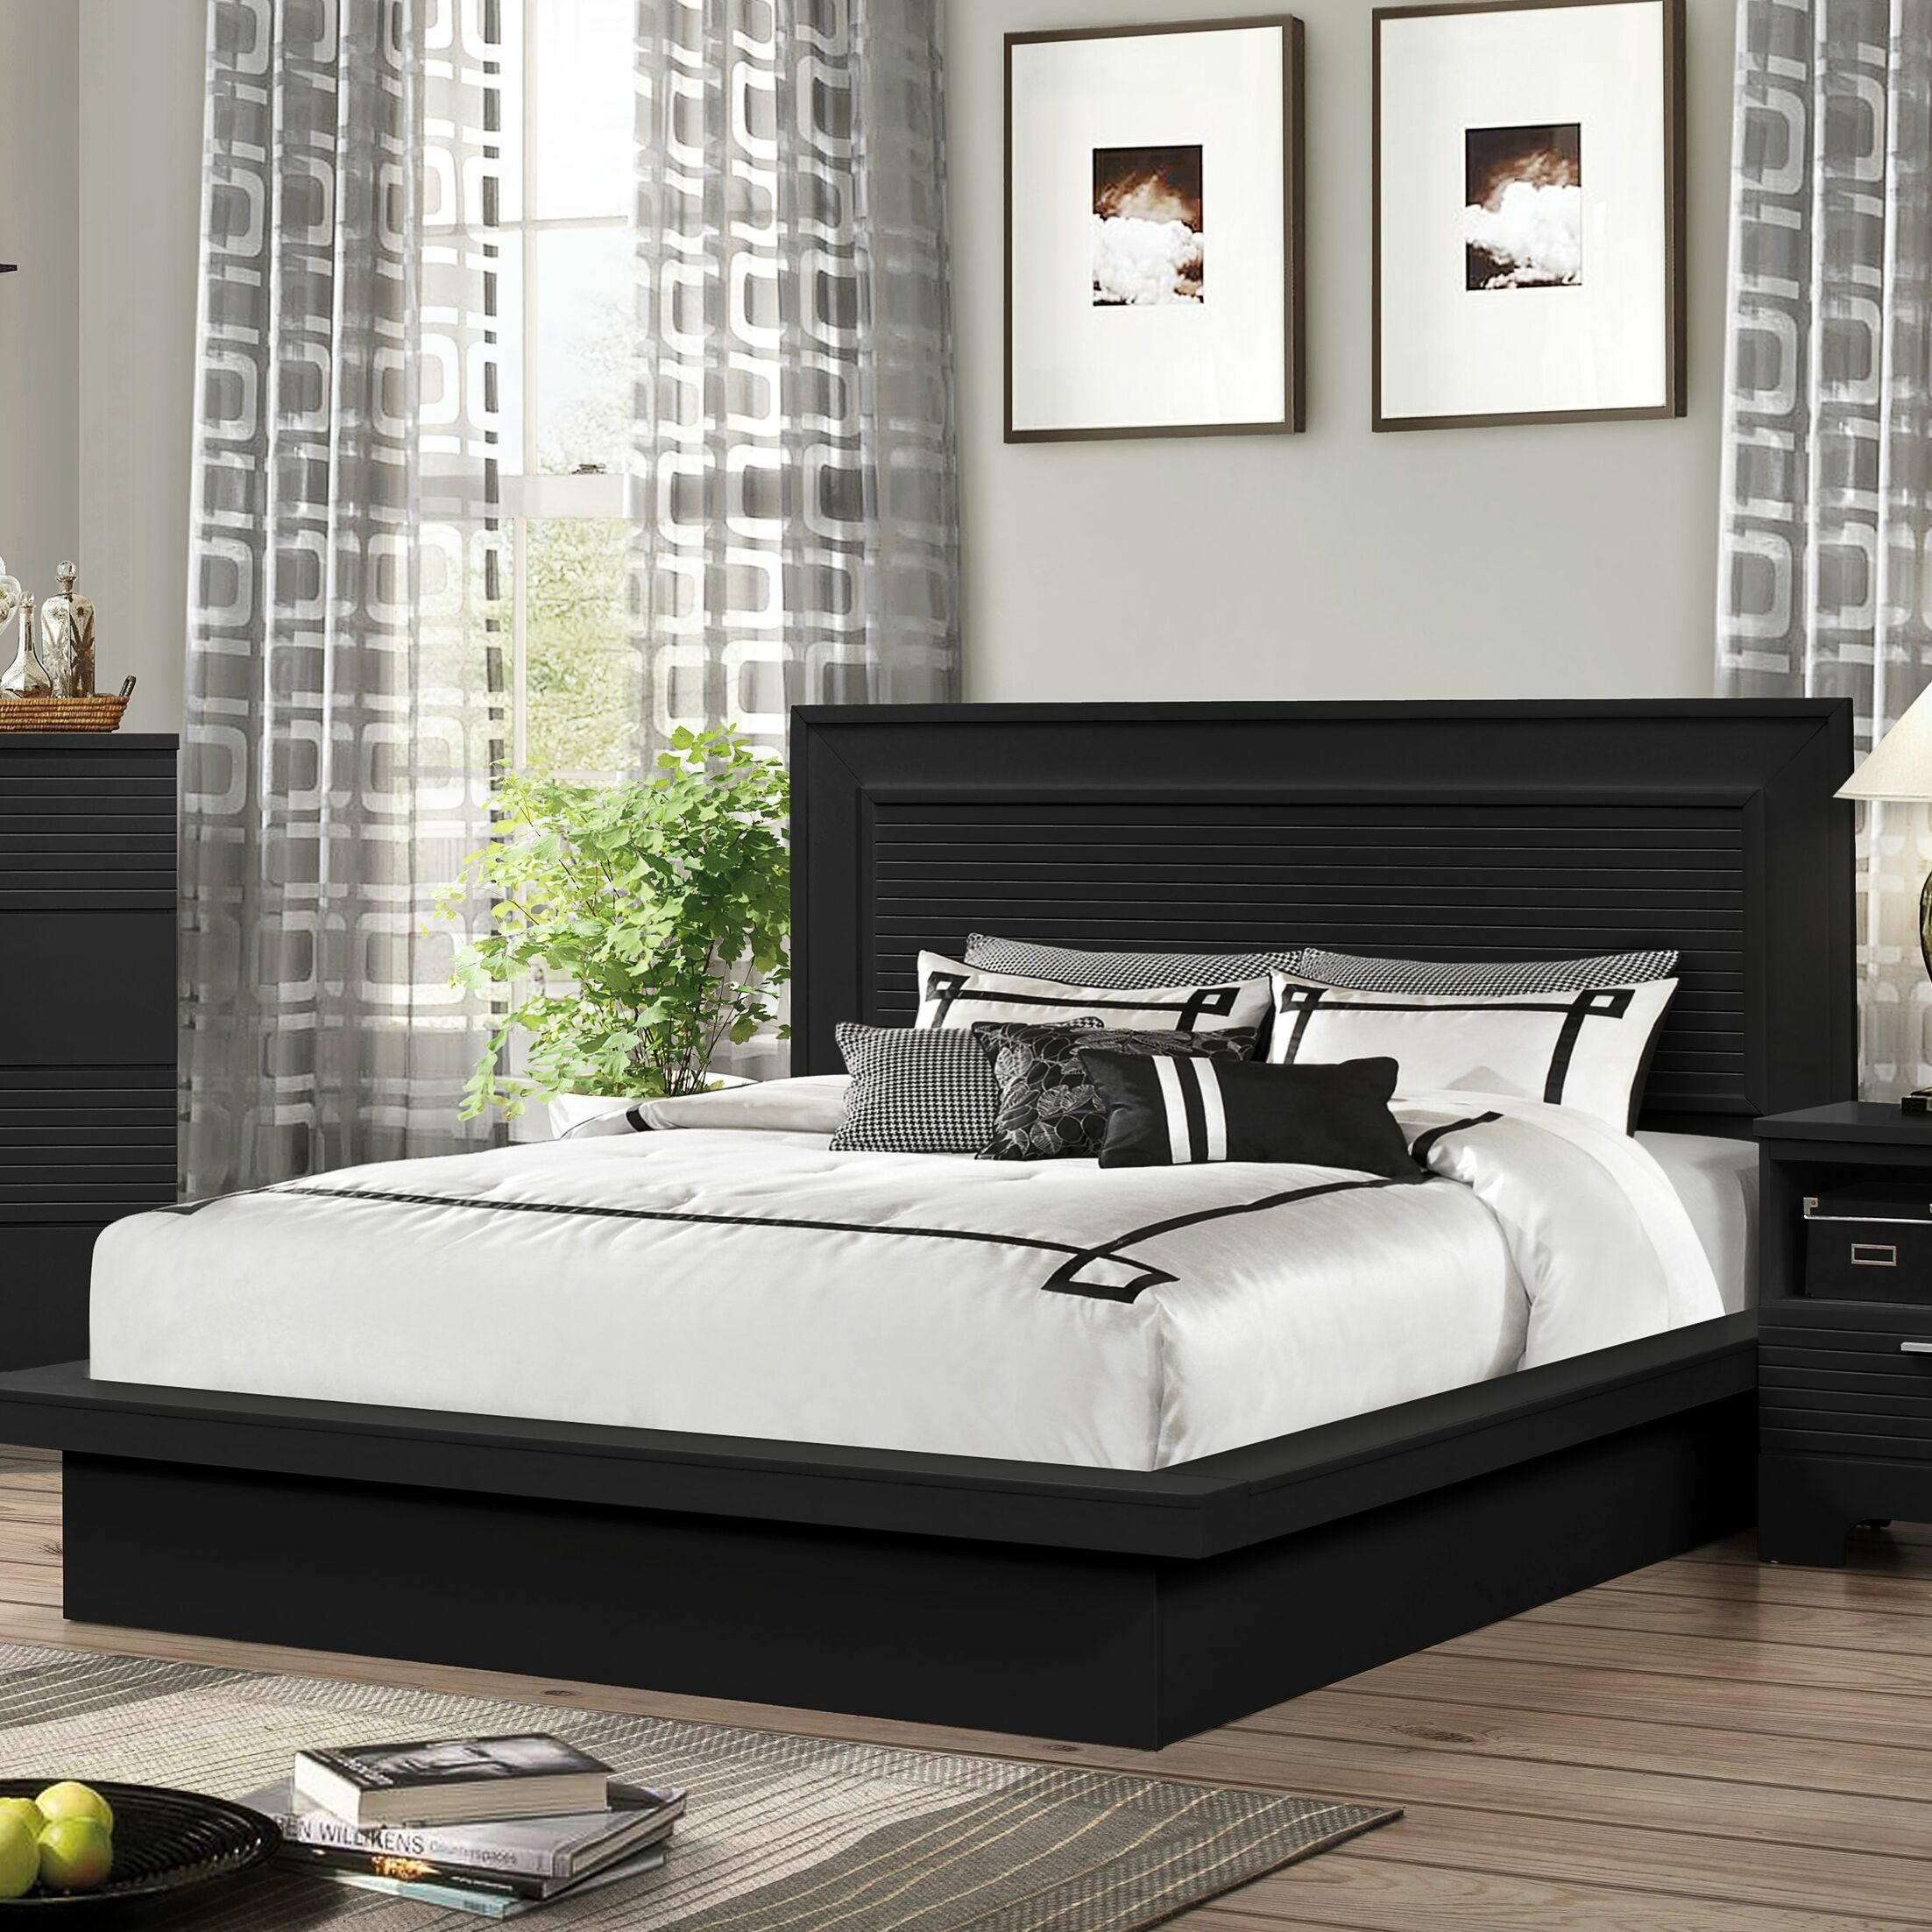 Joselyn Bed Color: Black, Size: Queen